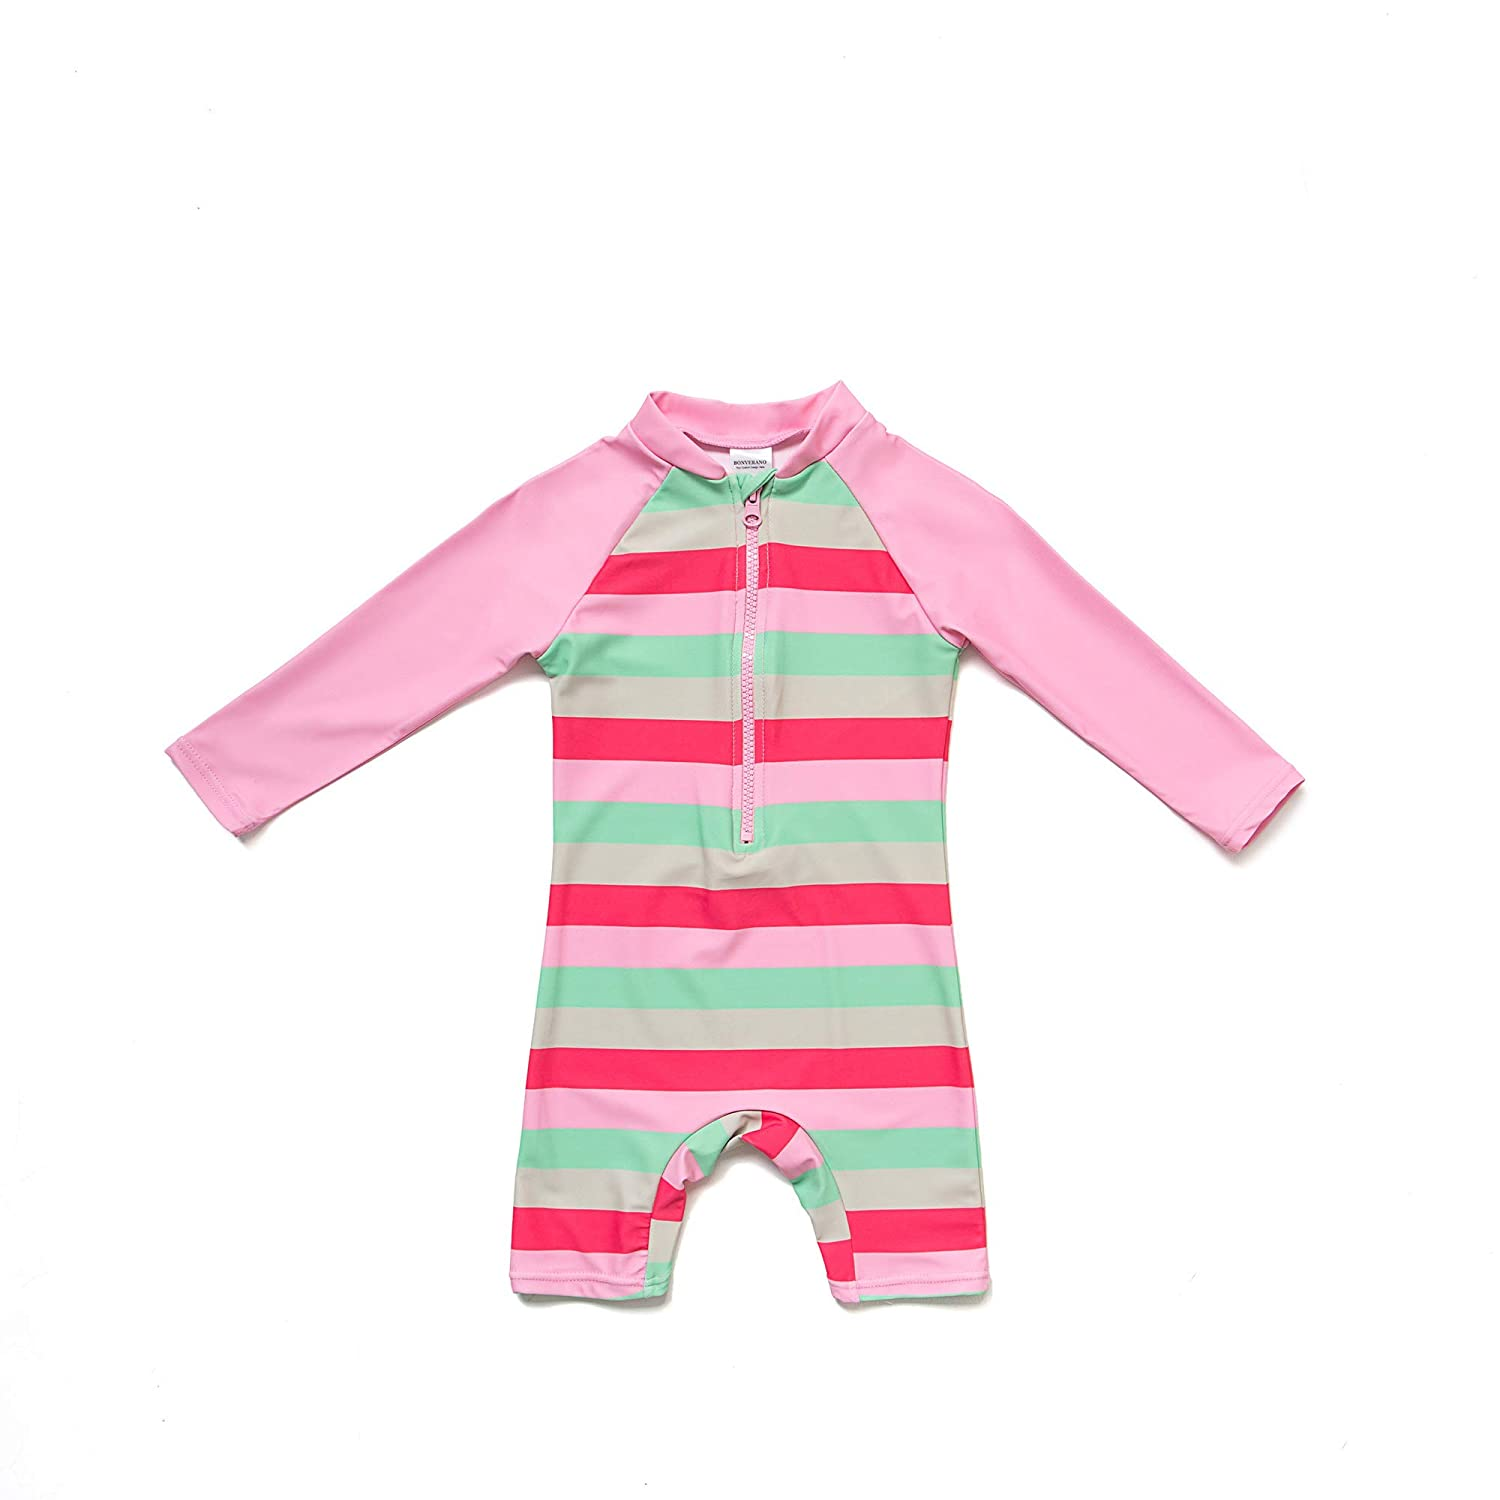 Sun Protection One Pieces Long Sleeves Swimwear with Bucket Hat Pink Pattern,3-6Months Baby Girls Sunsuit UPF 50